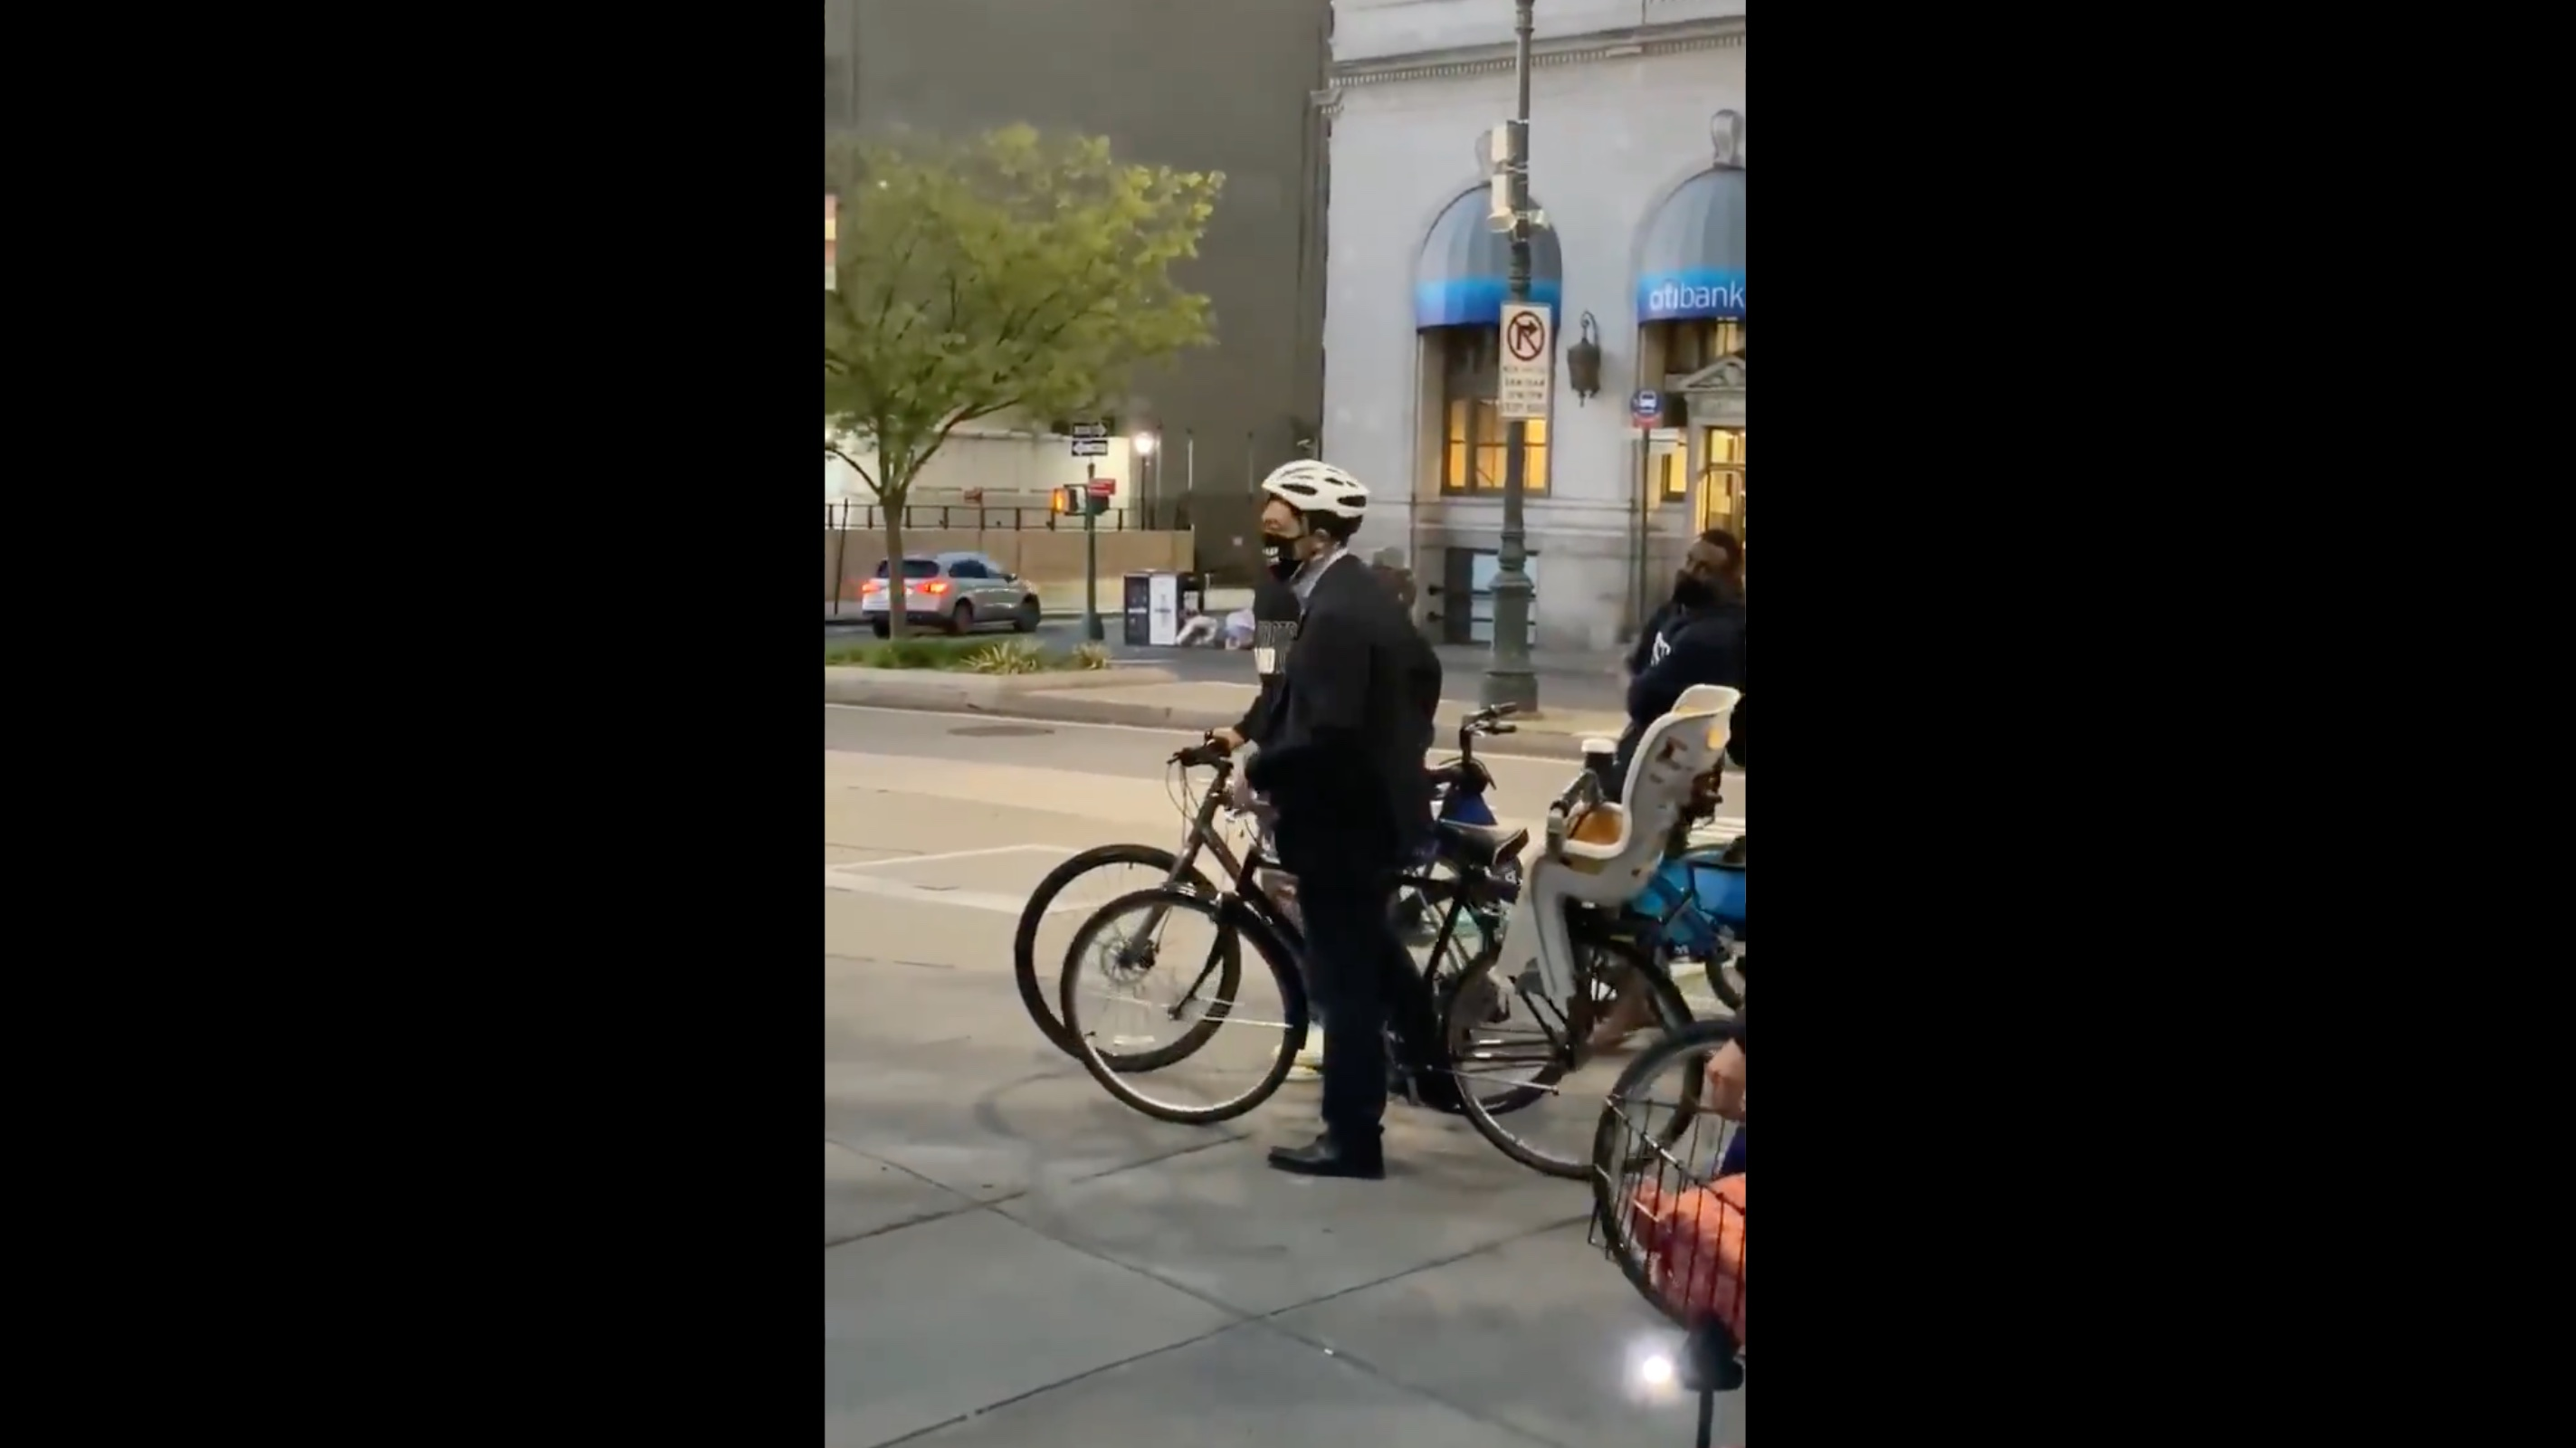 Andrew Yang on his bike being heckled out of a Daunte Wright protest by people pointing out that he is pro-cop